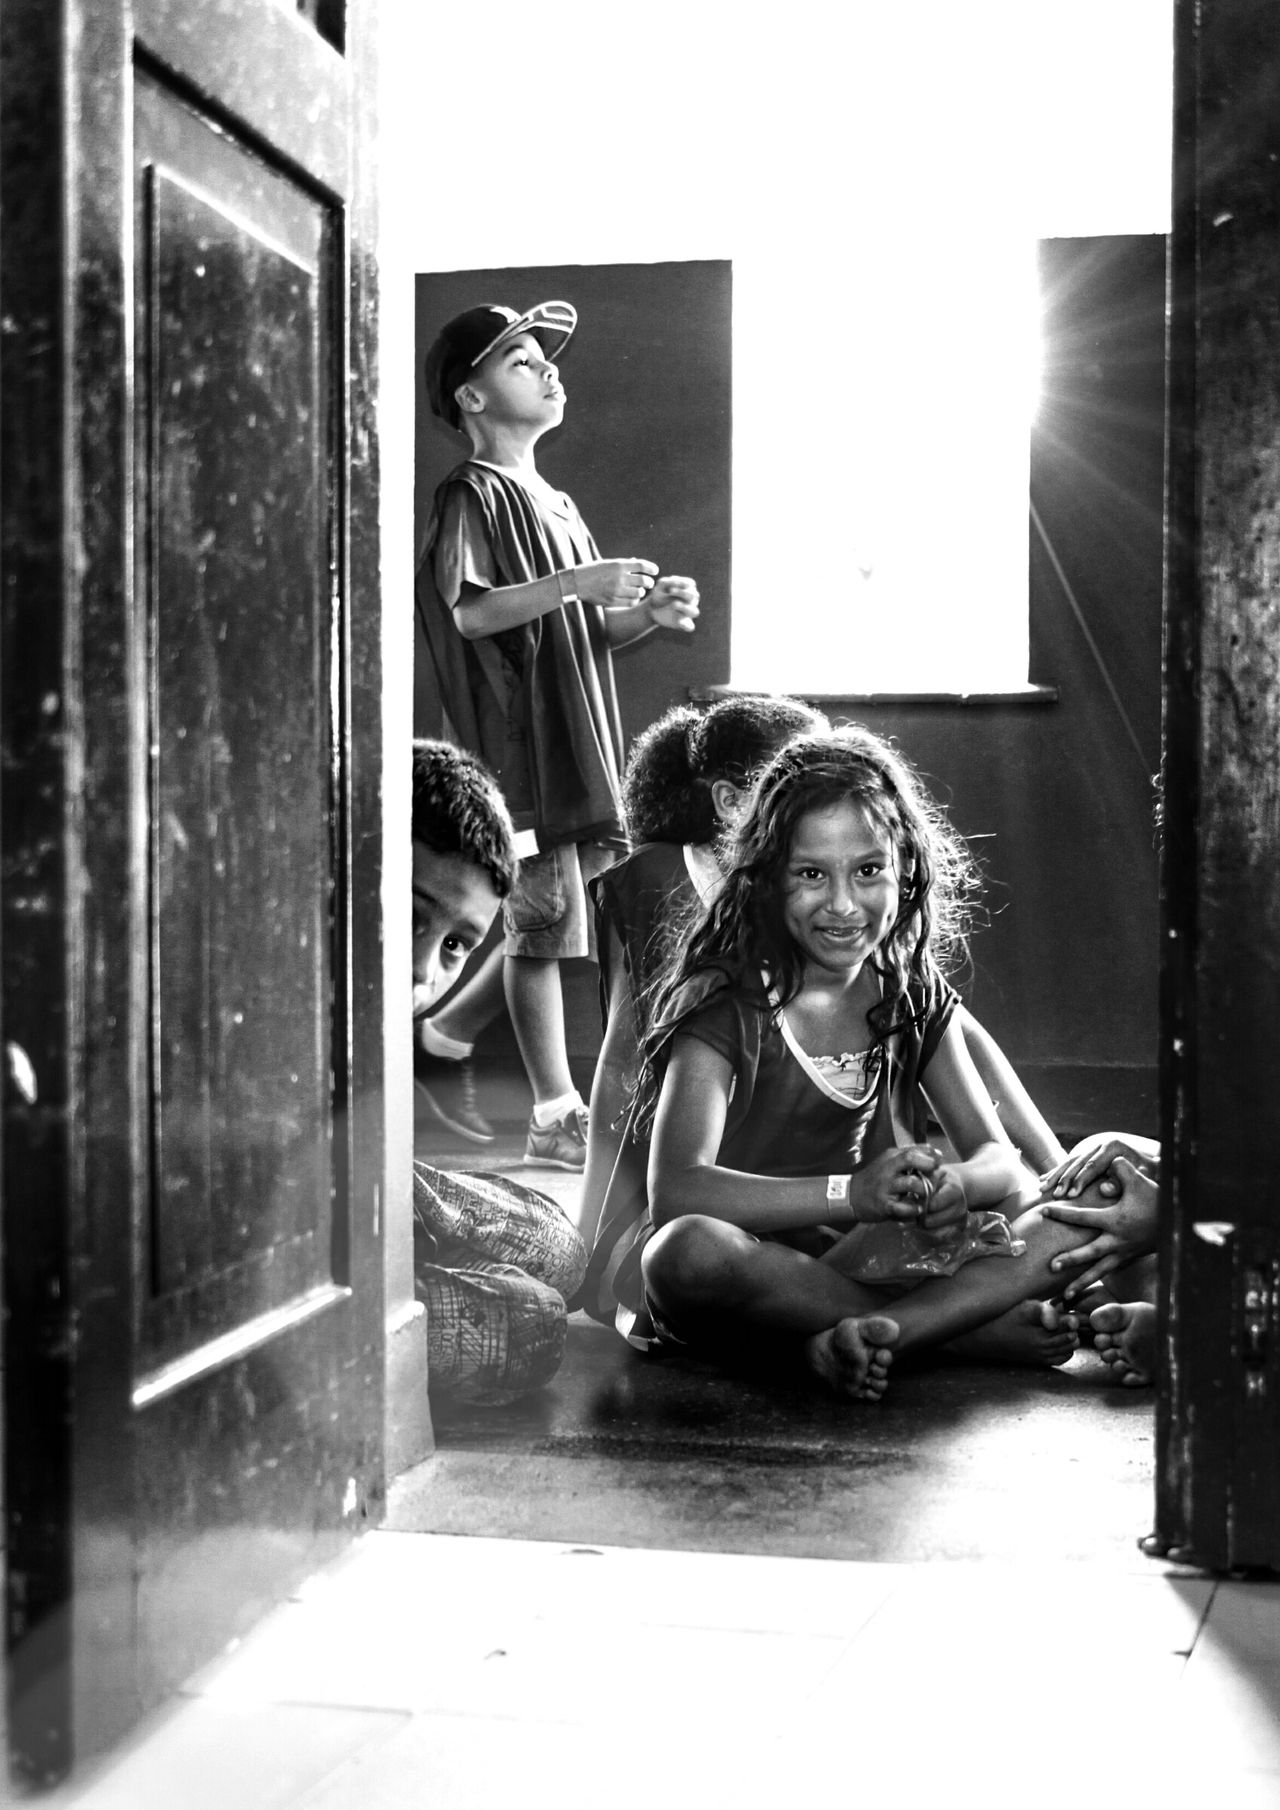 Let The light come in Archival People Indoors  Children Black And White Black & White Children Photography Light And Shadow Social Photography Social Documentary